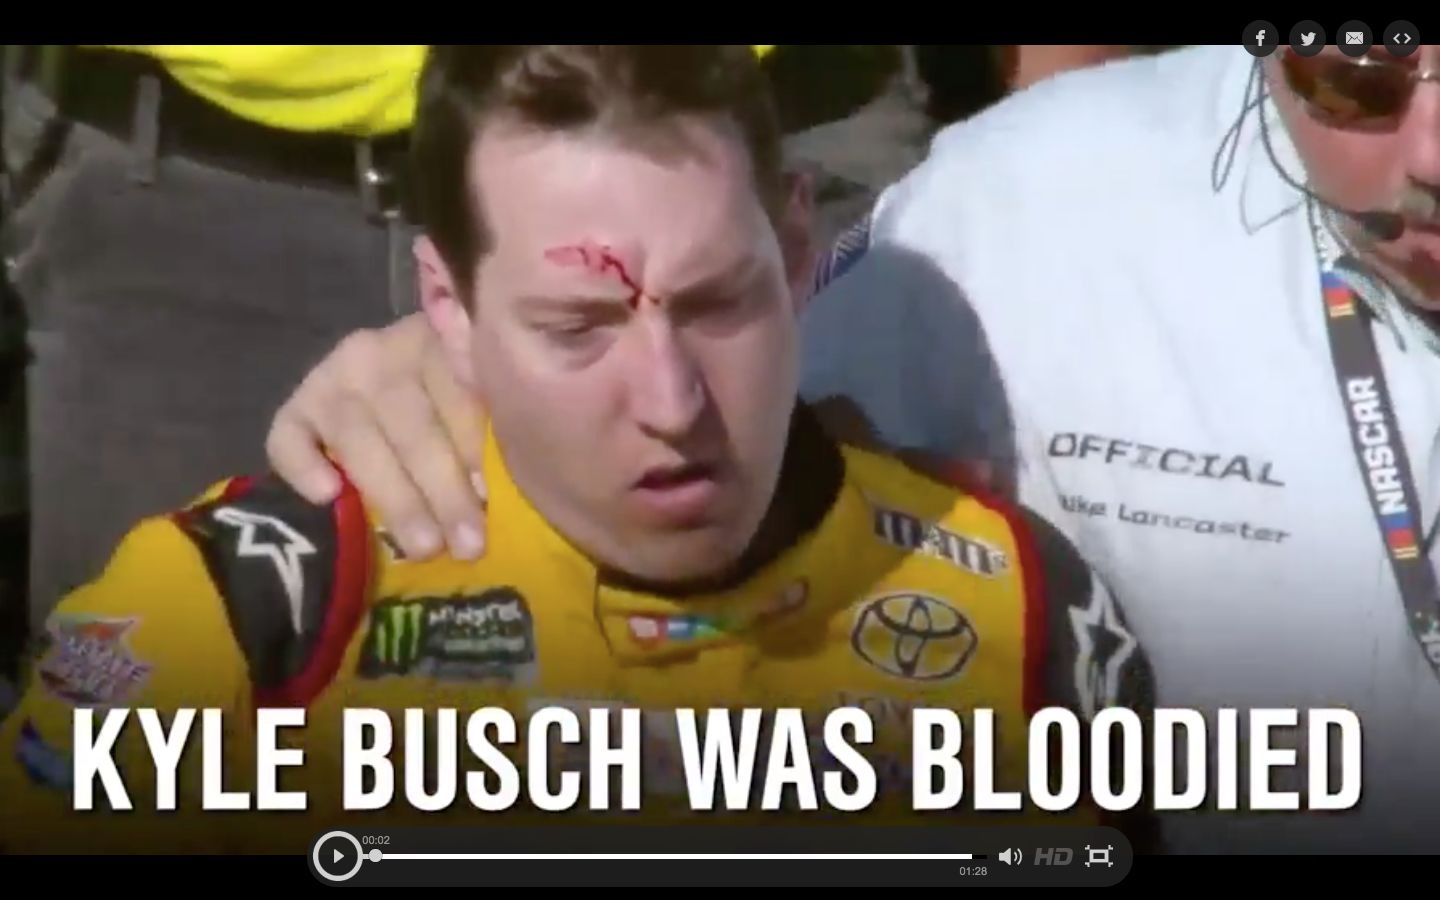 NASCAR driver Kyle Busch was left with a bloody gash on his forehead following a brawl at the Las Vegas Motor Speedway on Sun